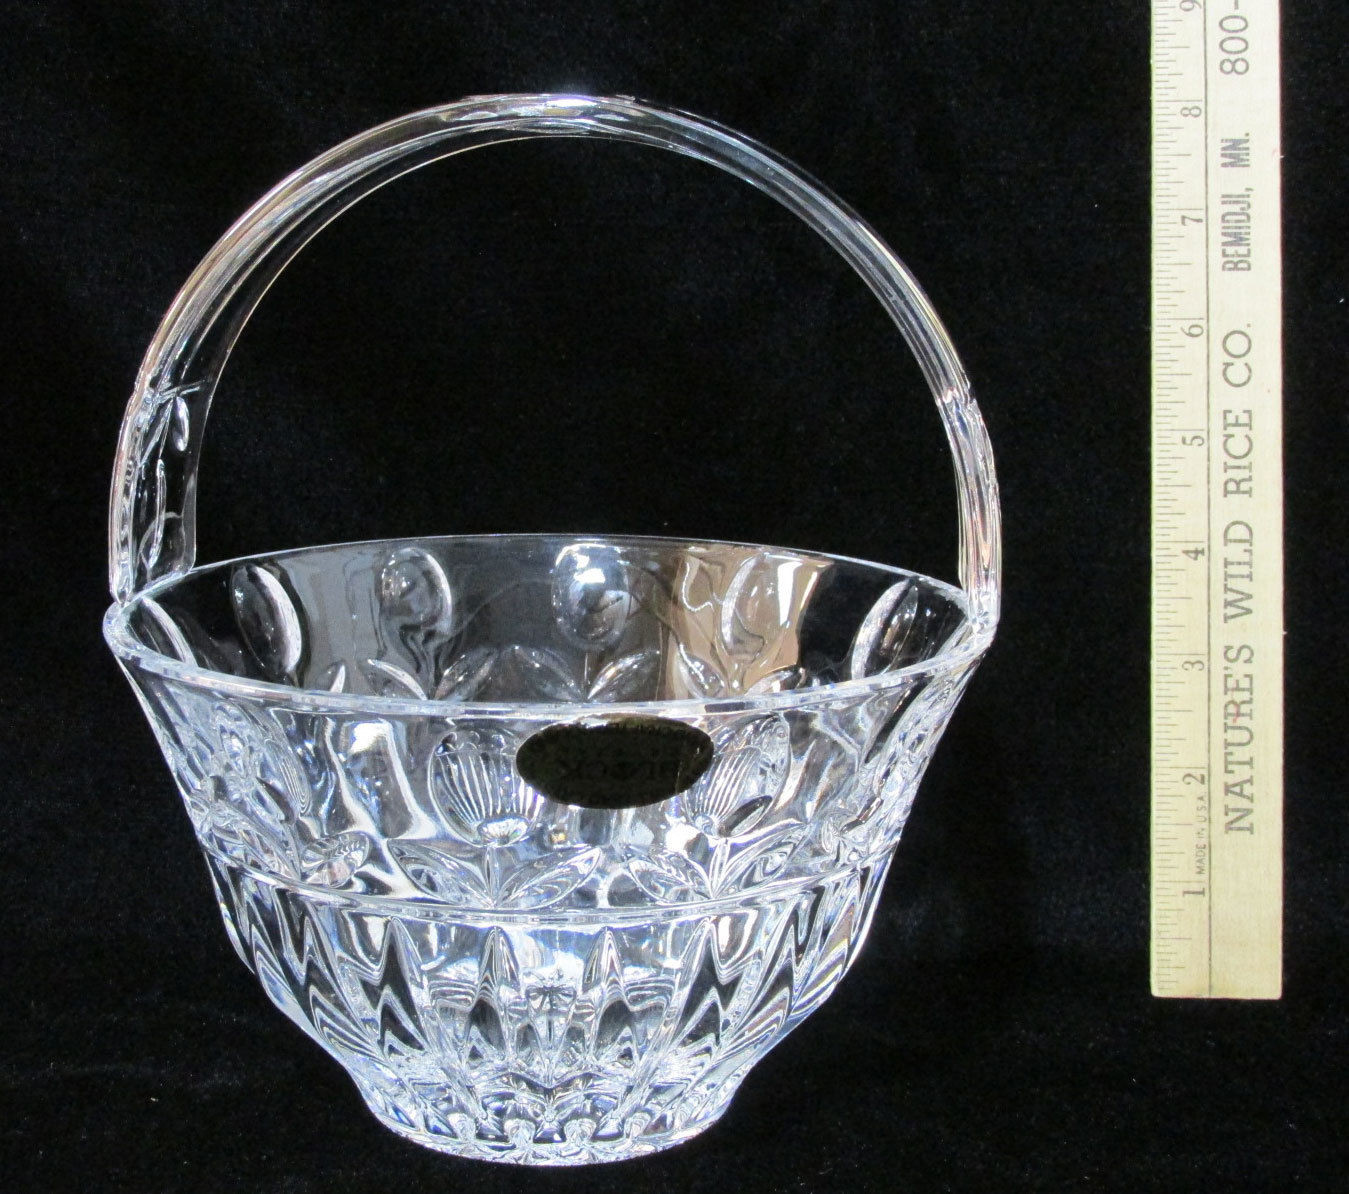 lead crystal vase made in poland of tulip garden crystal glass flower basket bowl w handle poland block with regard to tulip garden crystal glass flower basket bowl w handle poland block 24 lead 1 of 7only 1 available tulip garden crystal